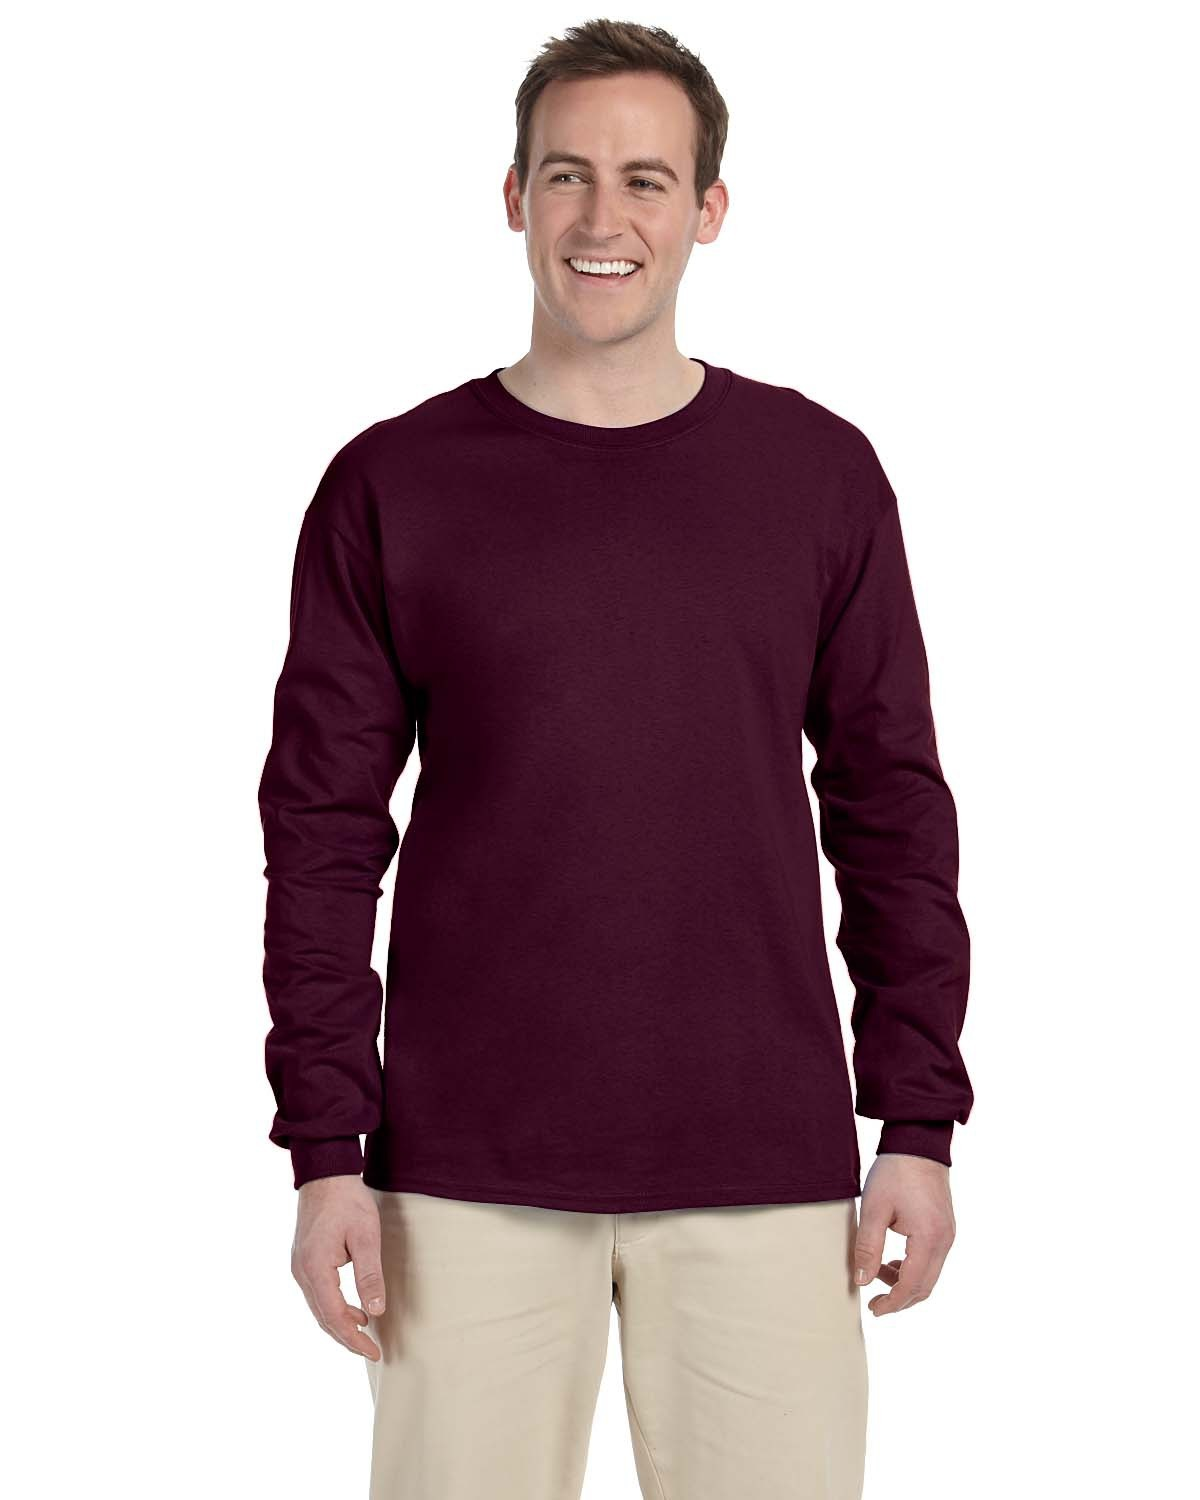 Blank Maroon Long Sleeve Shirt - RNK Shops